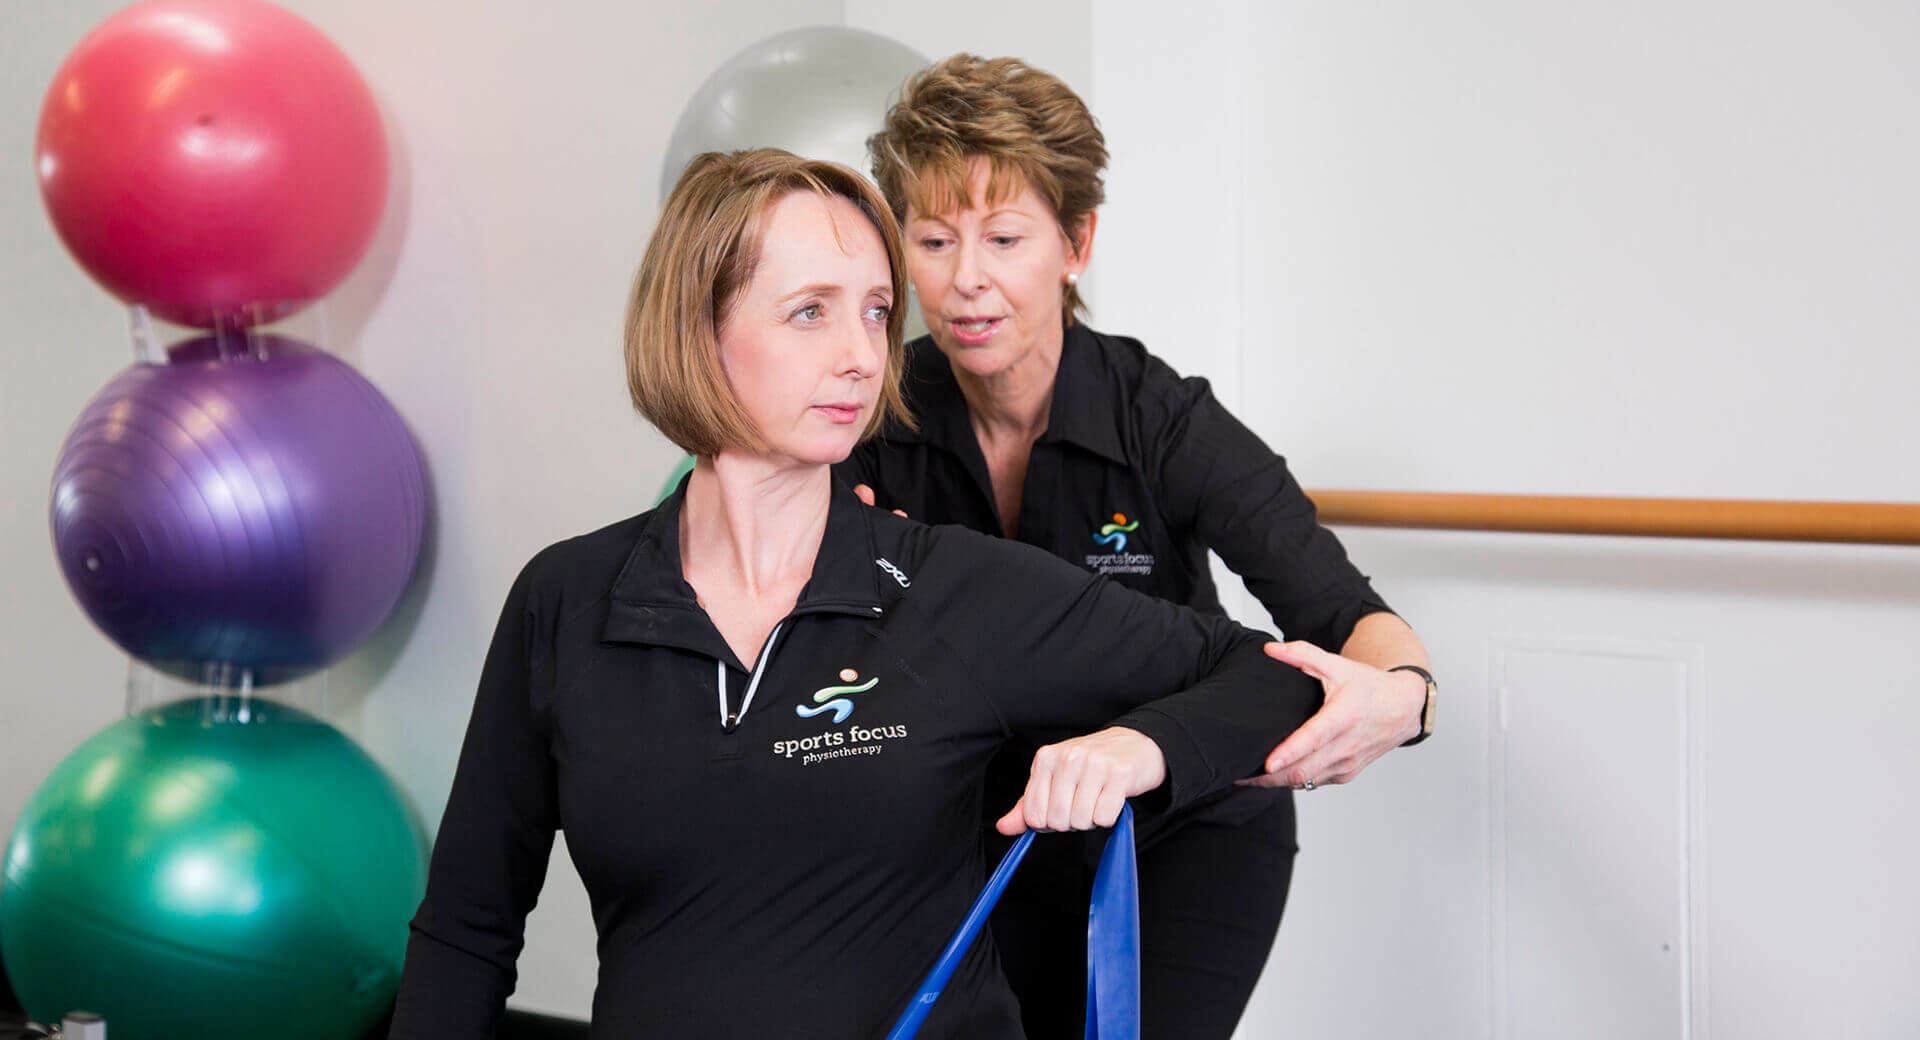 Womens-Pelvic-Health-Pregnancy-Exercise-Class-Pregnancy-Physio-Sydney-Womens-Health-Physiotherapy